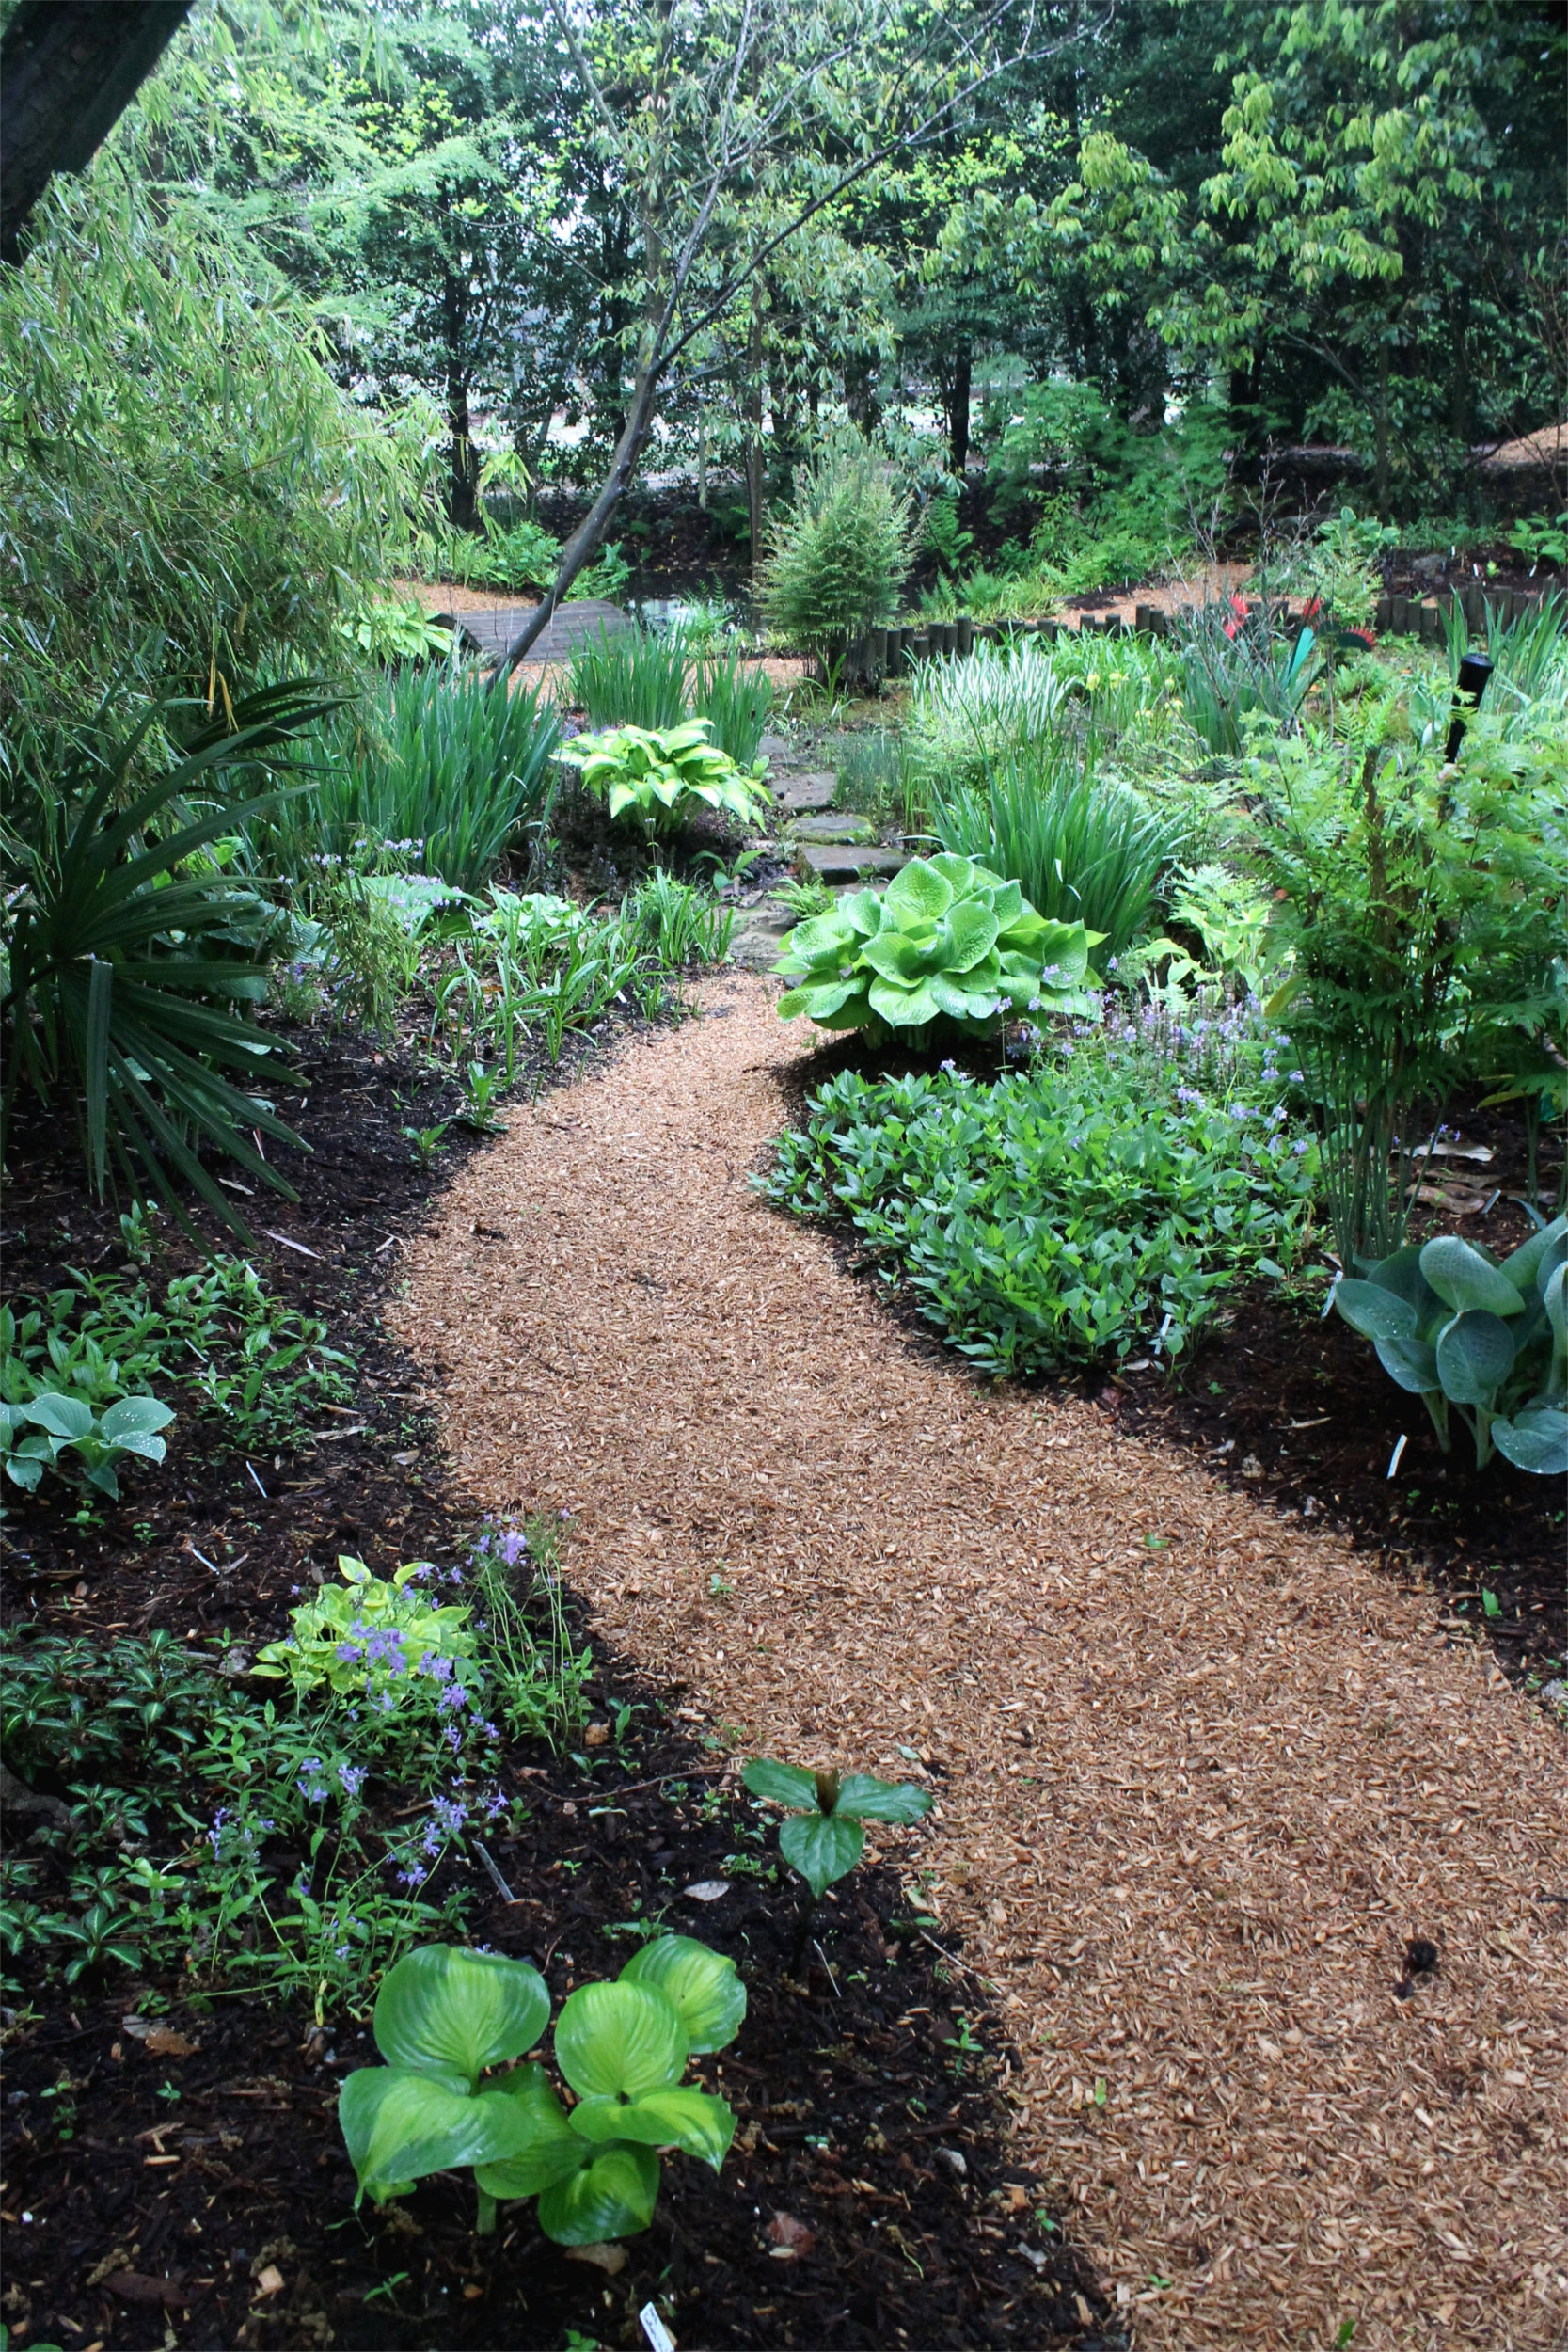 Plant Delights Nursery At Juniper Level Botanic Garden Is Pionate About Hostas And They Are One Of Our Active Breeding Programs